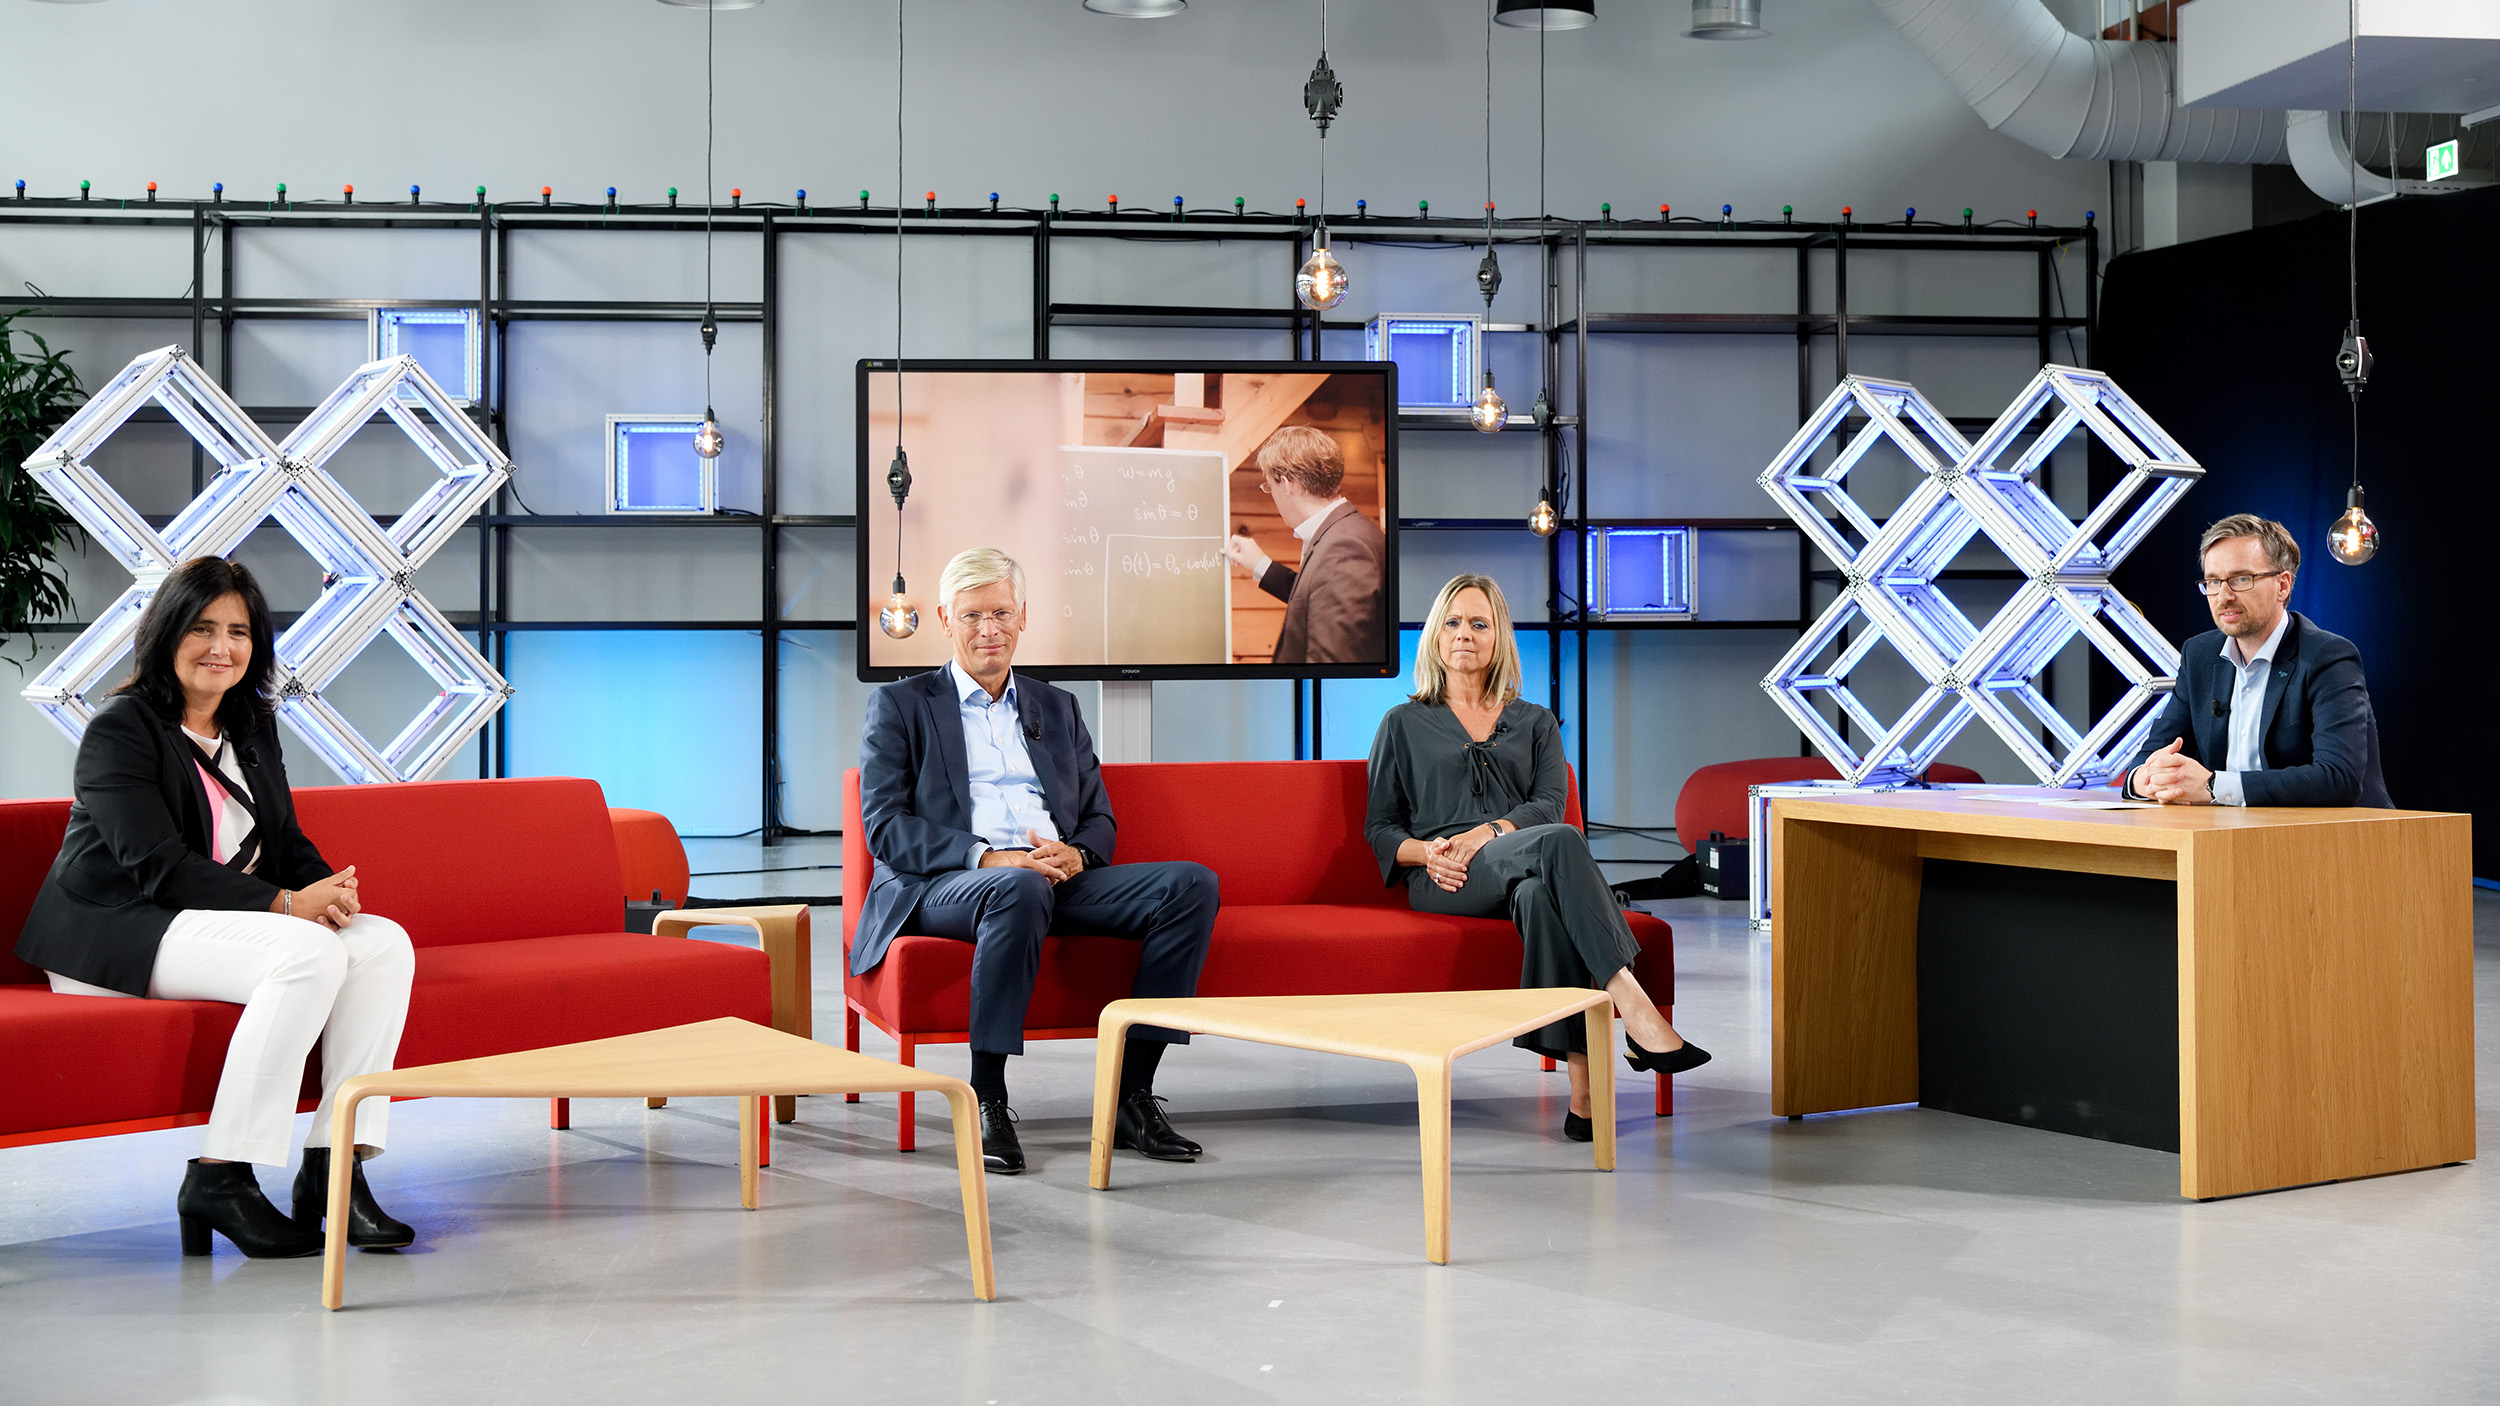 Talk show that marks the start of the academic year 20-21 of Eindhoven University of Technology